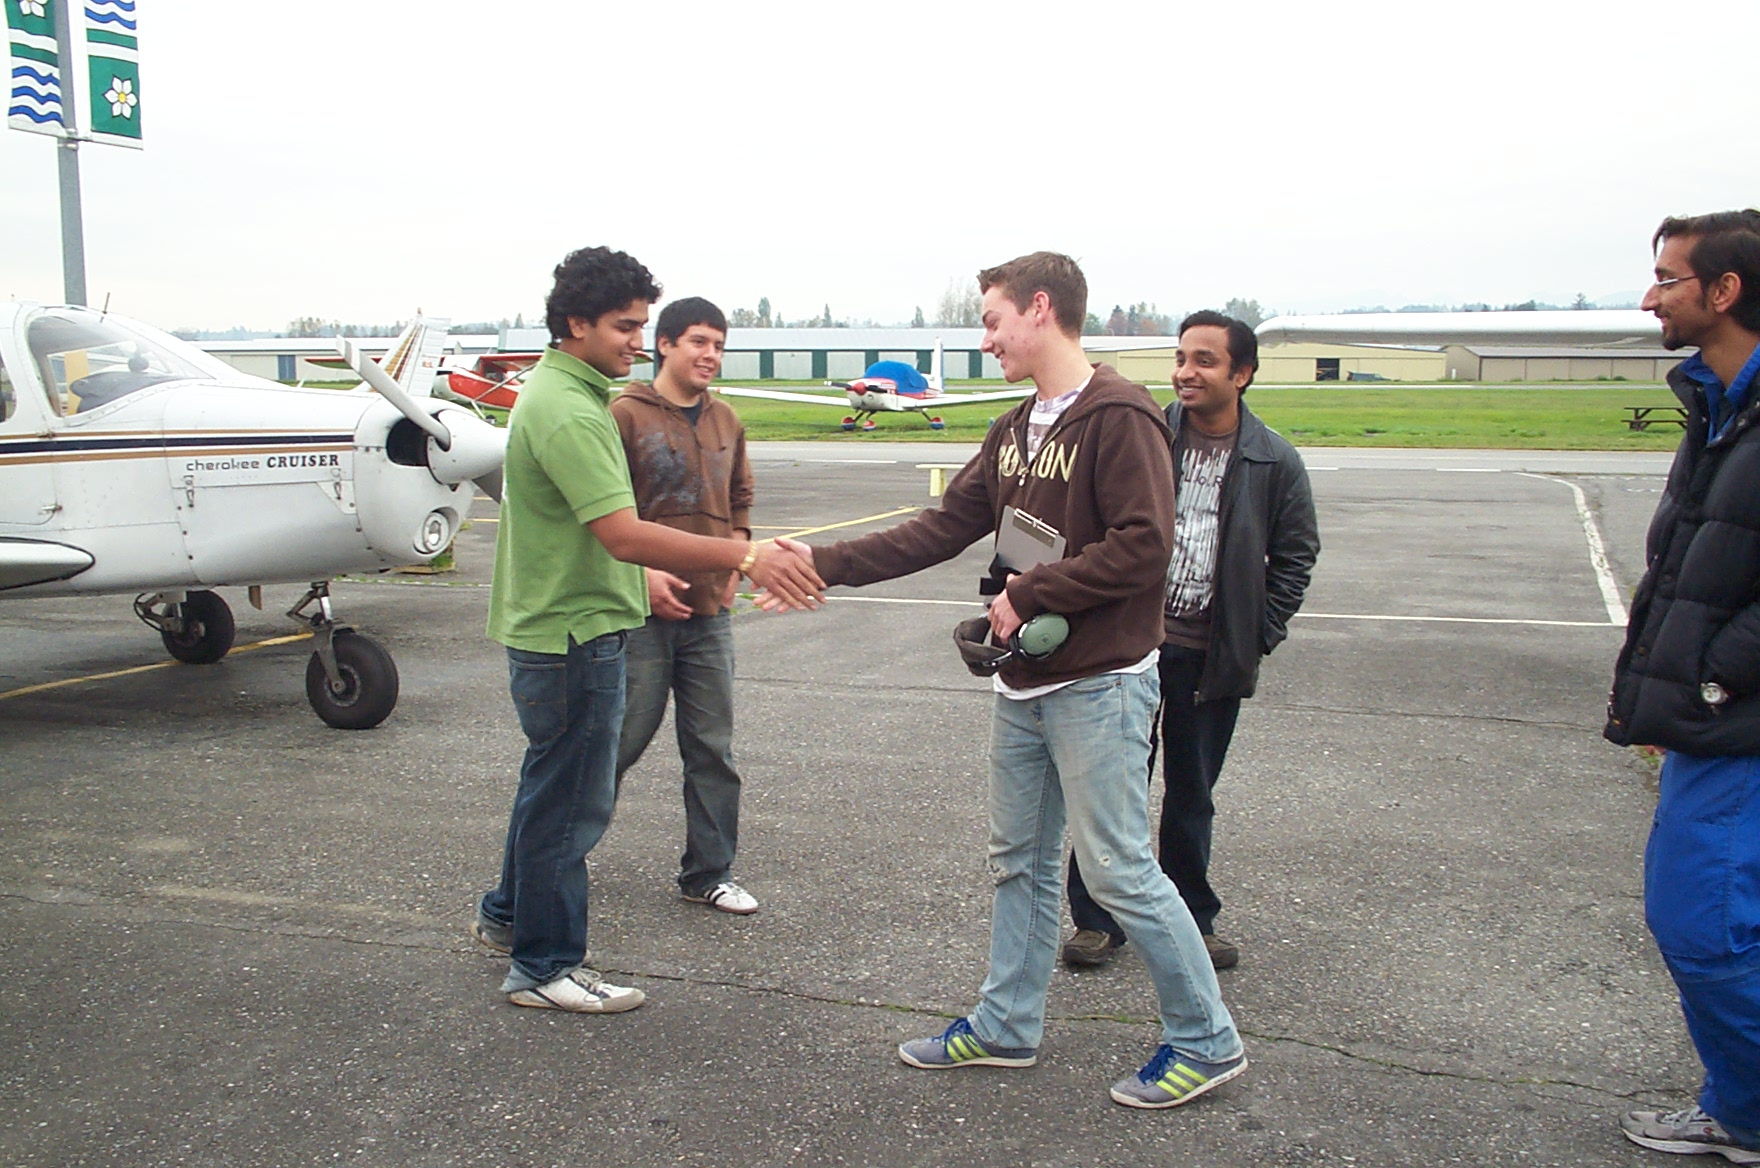 Kyle Rempel congratuled by fellow students following his First Solo Flight, October 18, 2010.